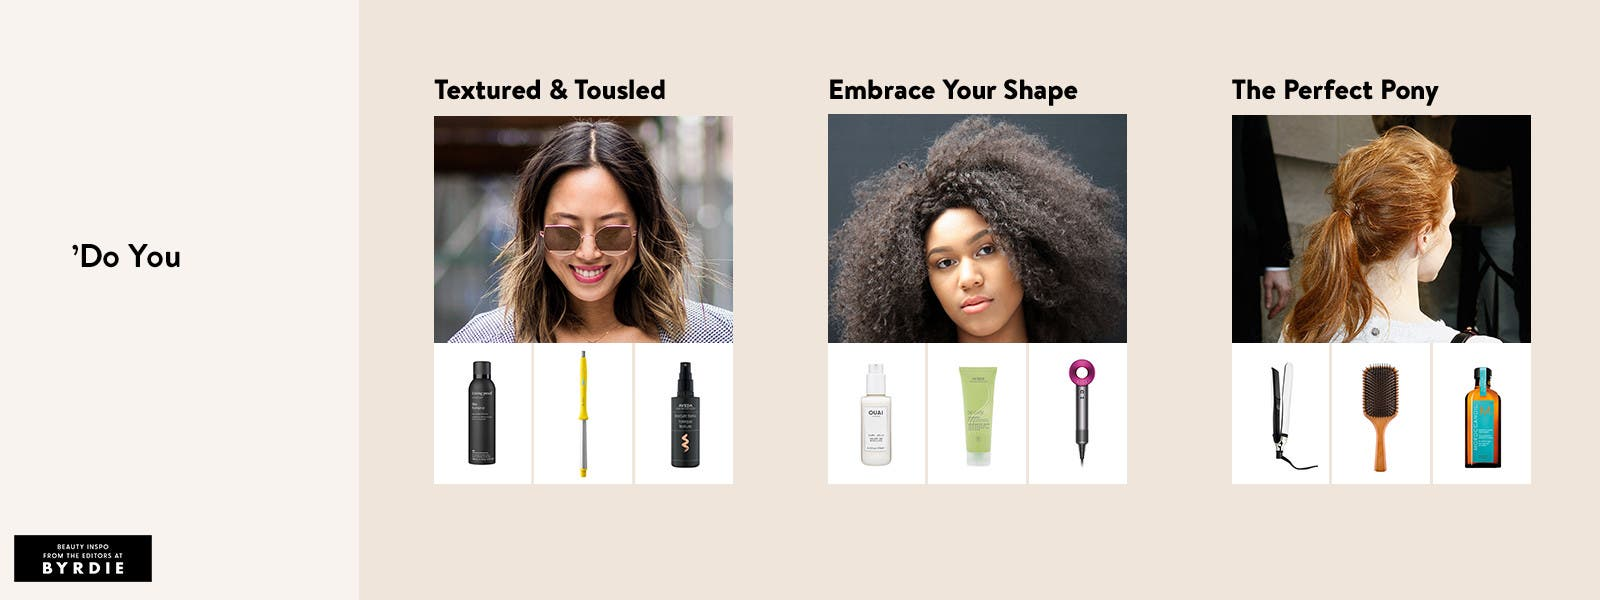 'Do you: textured and tousled, embrace your shape and the perfect pony